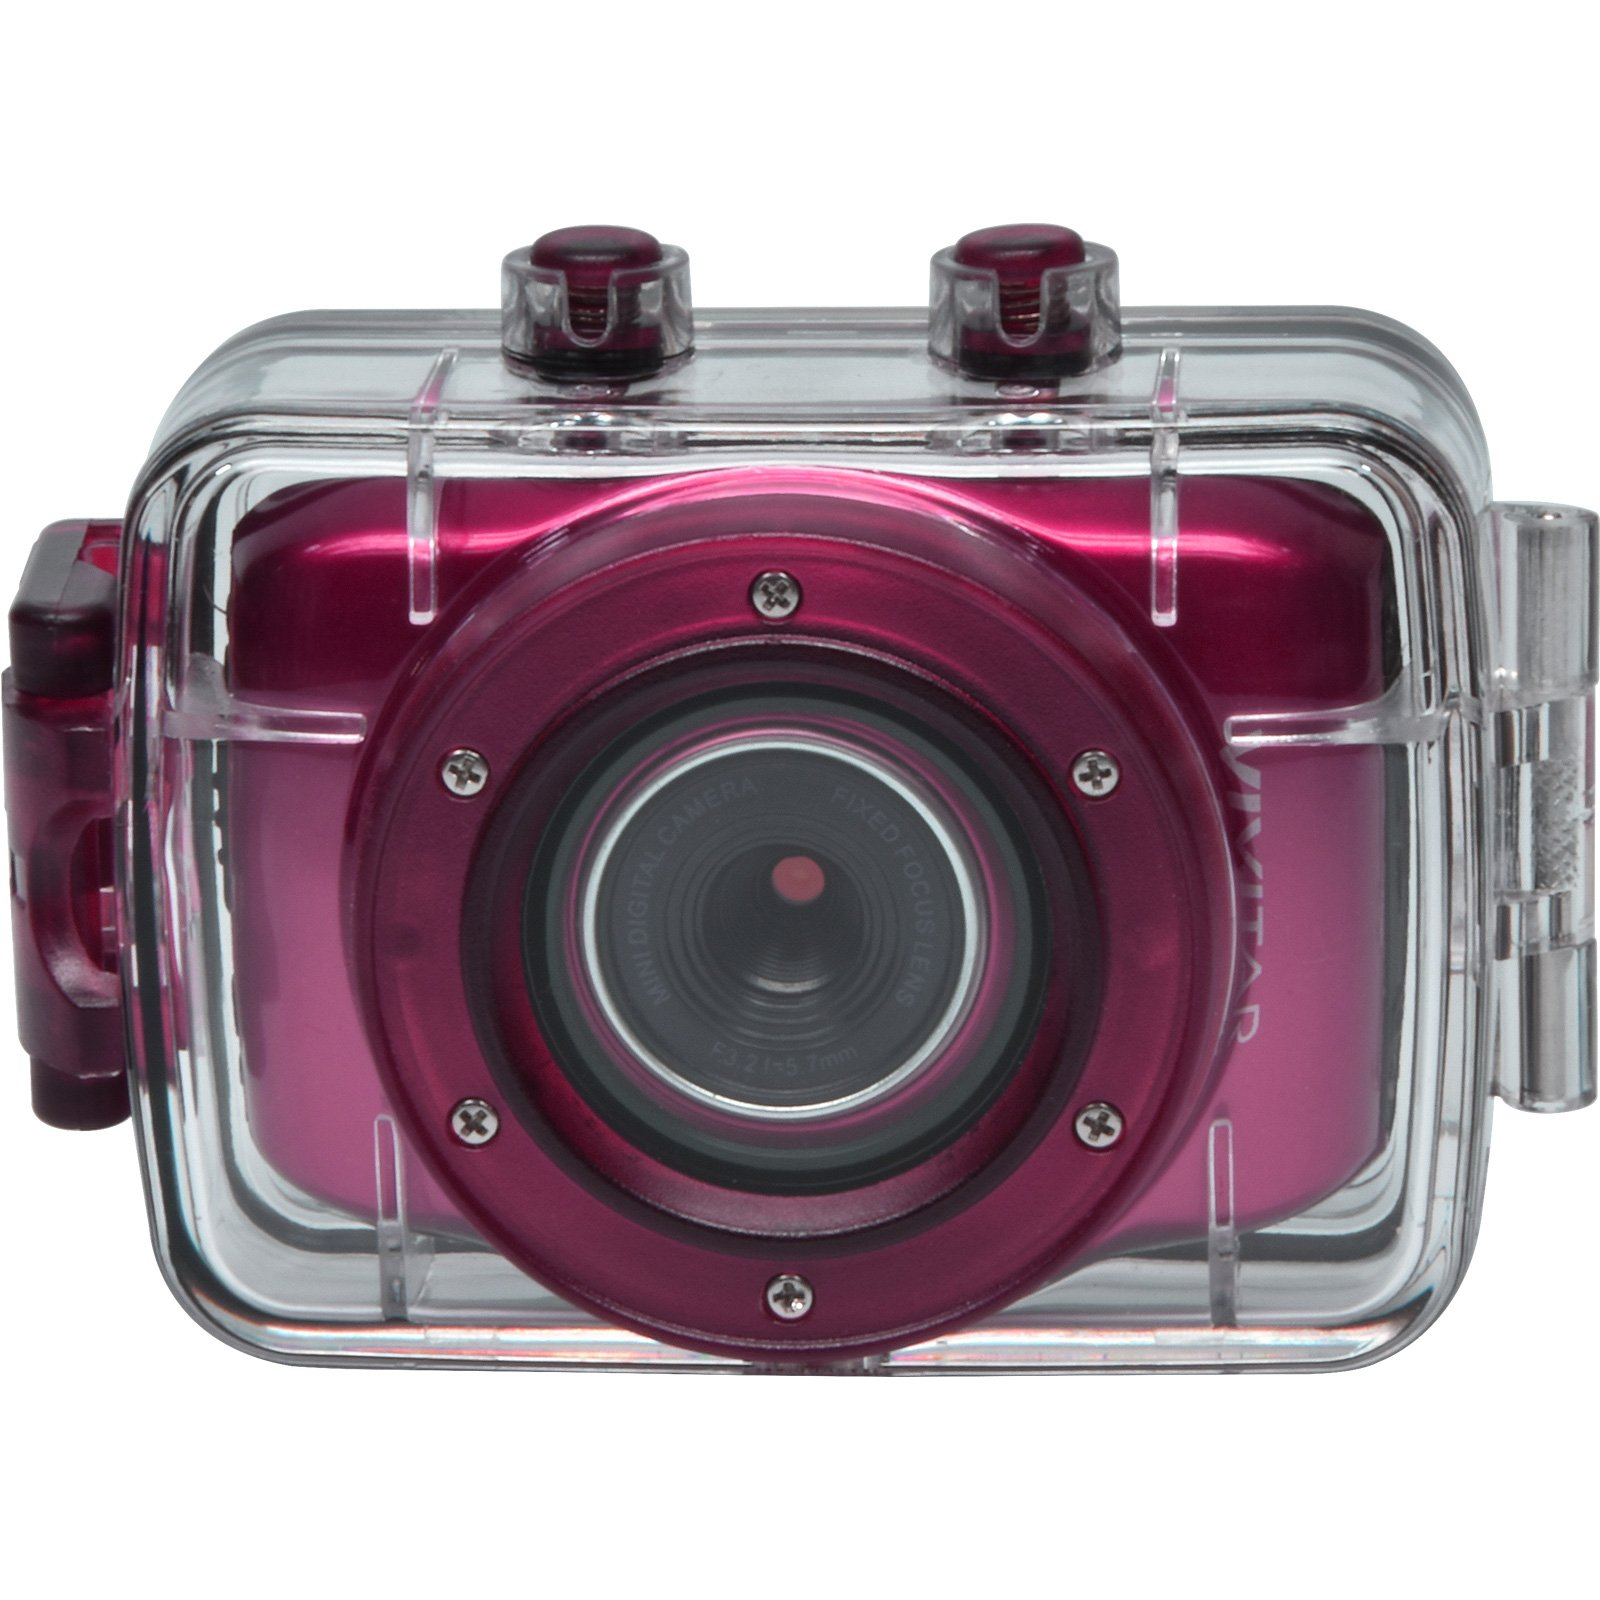 Vivitar DVR781HD HD Waterproof Action Video Camera Camcorder (Pink) with Helmet & Bike Mounts by Vivitar